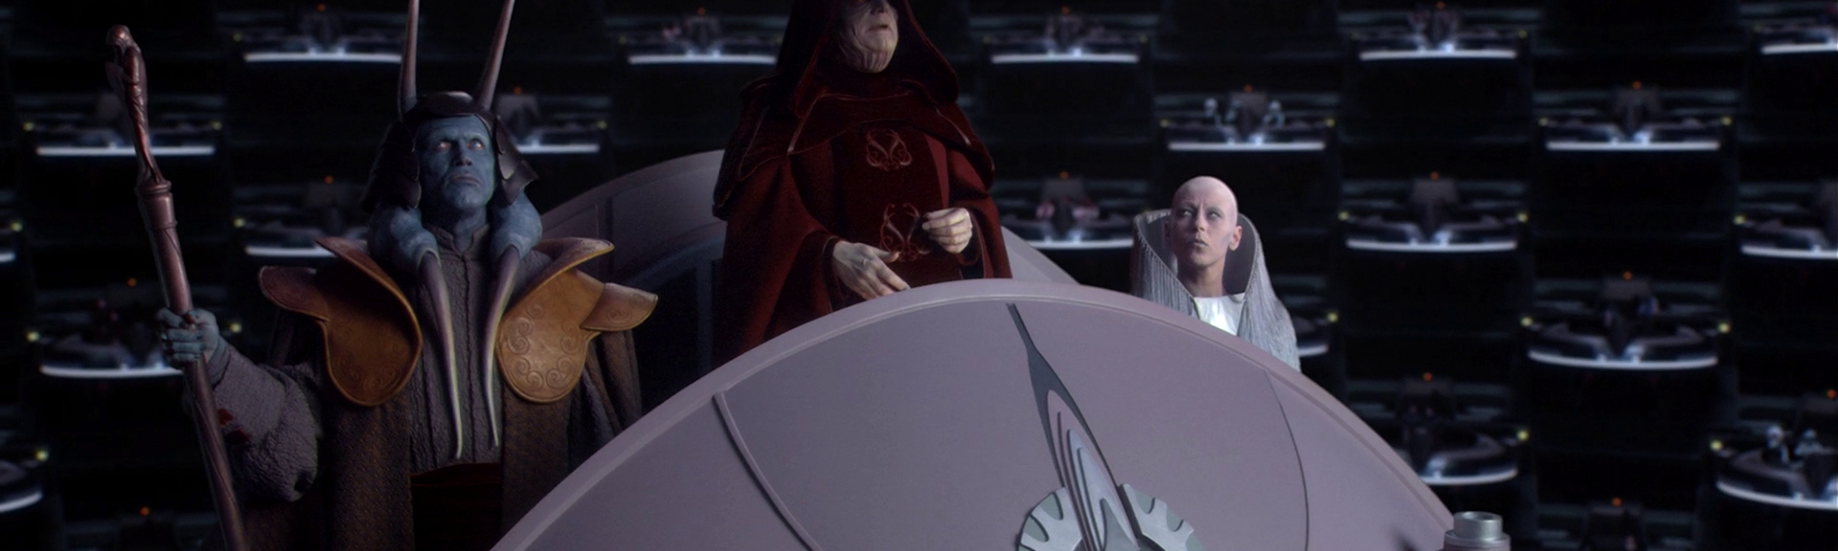 Palpatine S Master Plan Excellent Everything Is Going As By Rodrigo Pipoli Why I Love Star Wars Medium